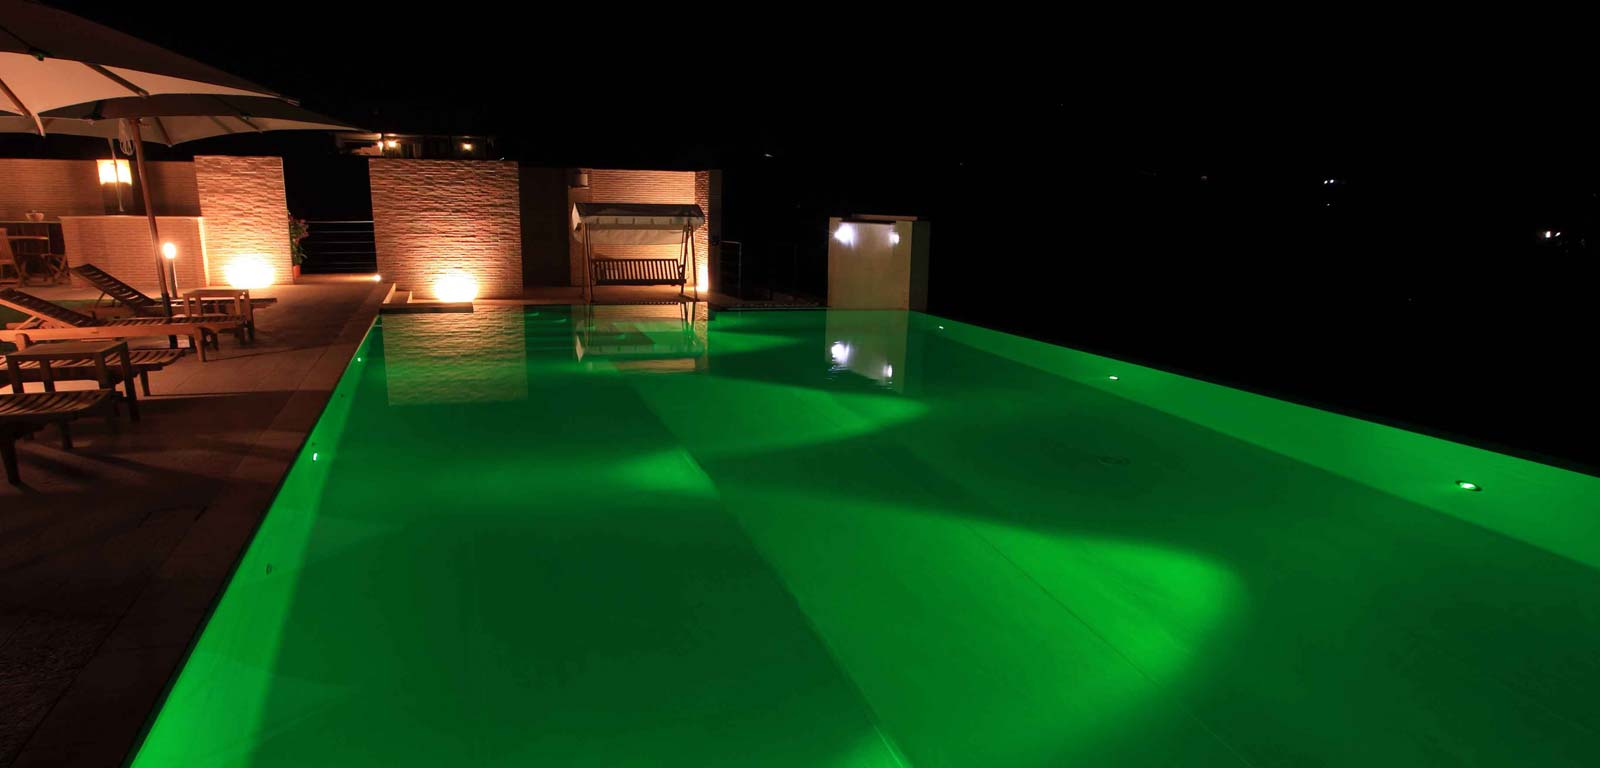 Piscine per interni piscine wellco with piscine per - Lampade a led per piscine fuori terra ...